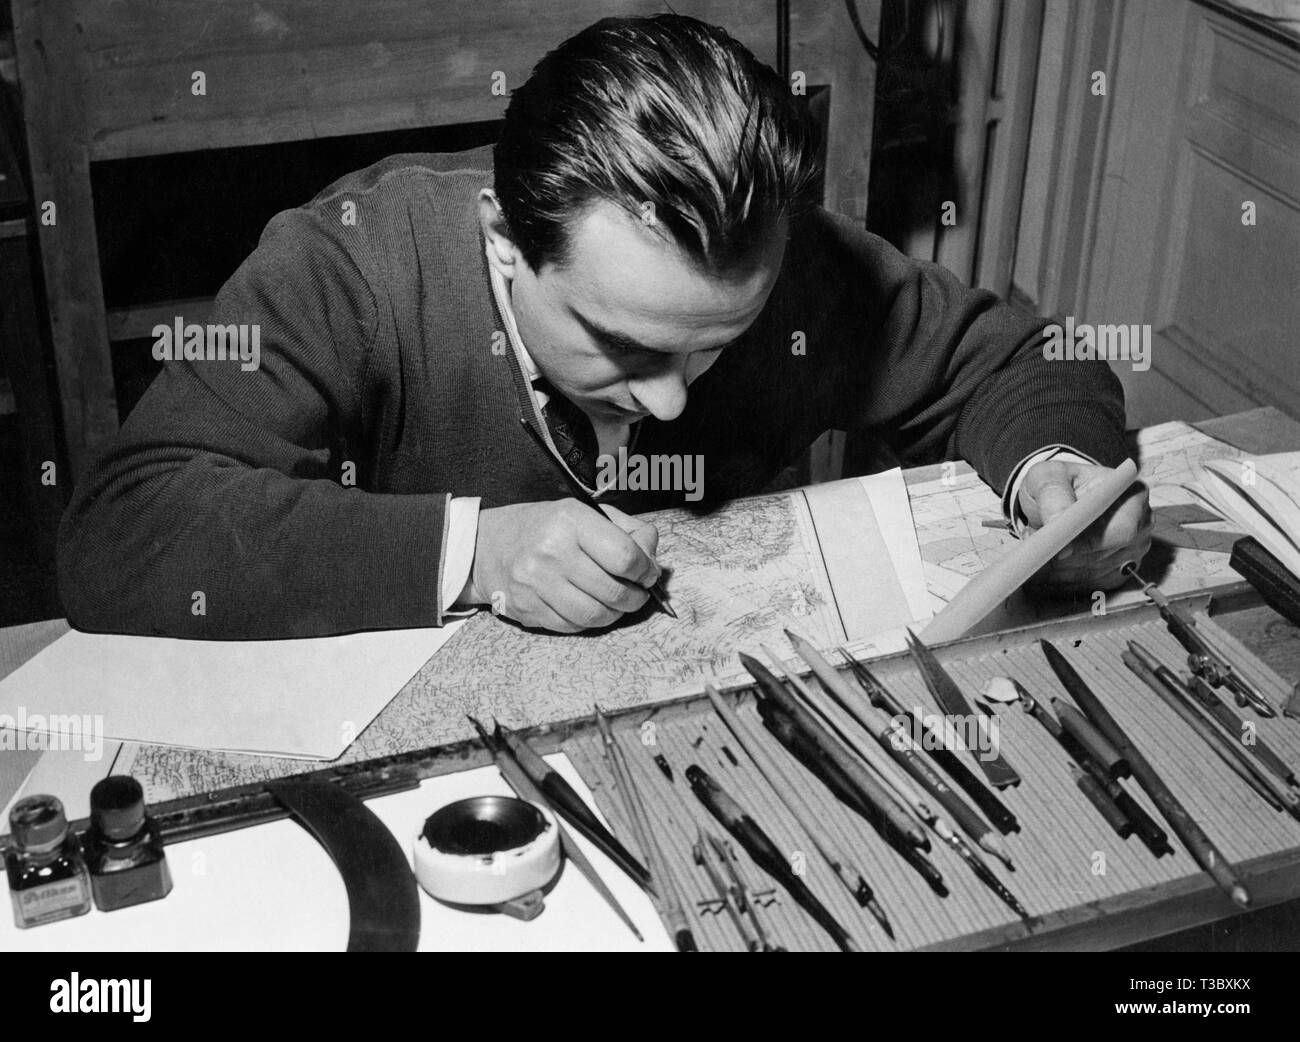 cartographic office, draughtsman, 1954 - Stock Image